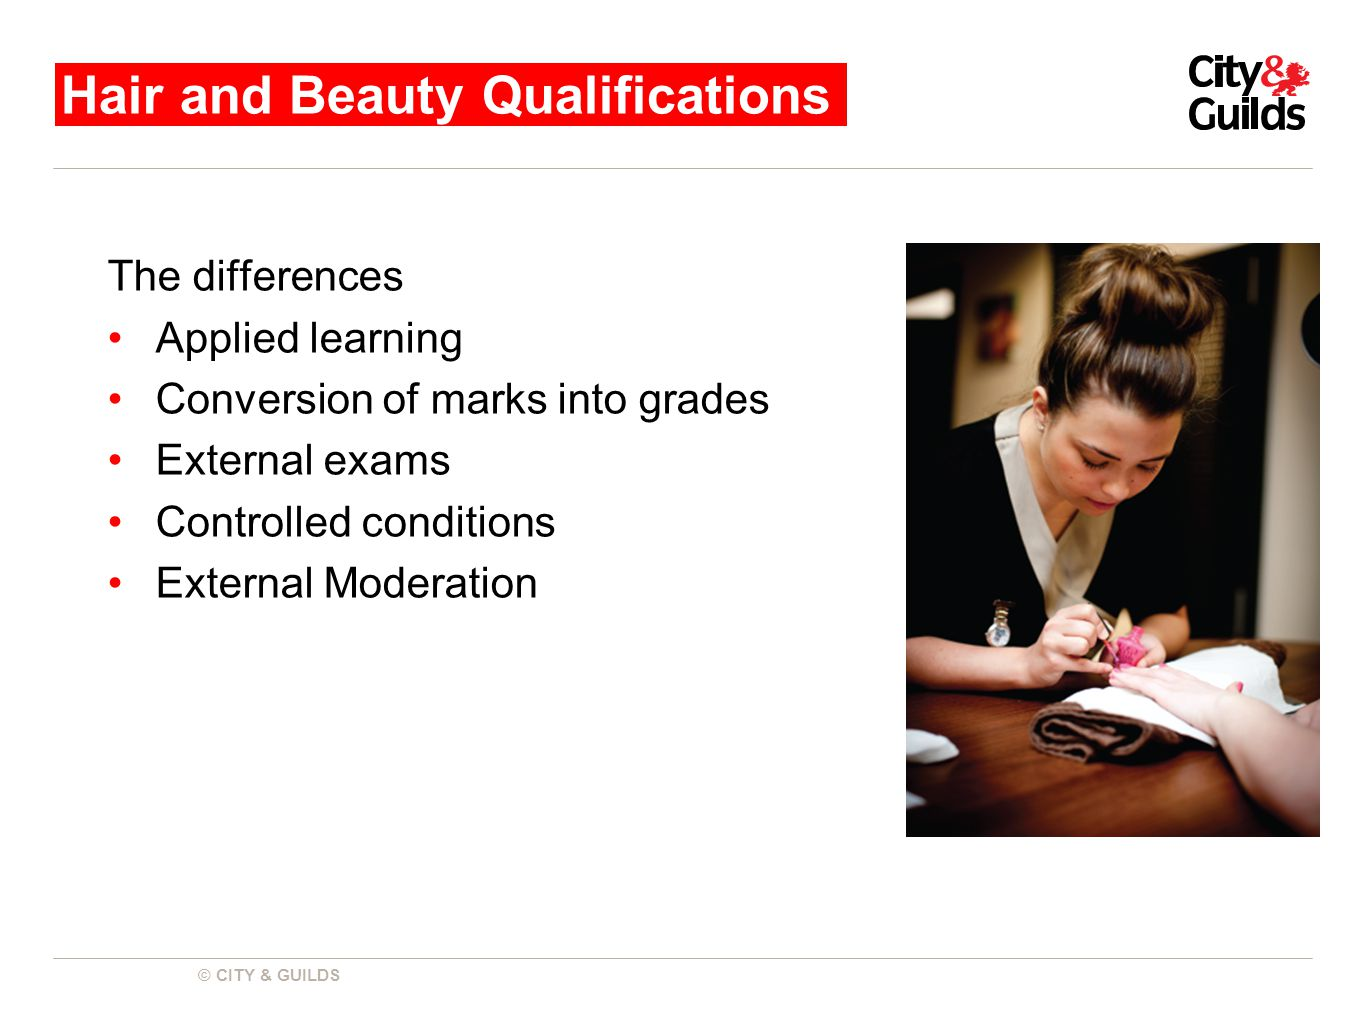 © CITY & GUILDS The differences Applied learning Conversion of marks into grades External exams Controlled conditions External Moderation Hair and Beauty Qualifications